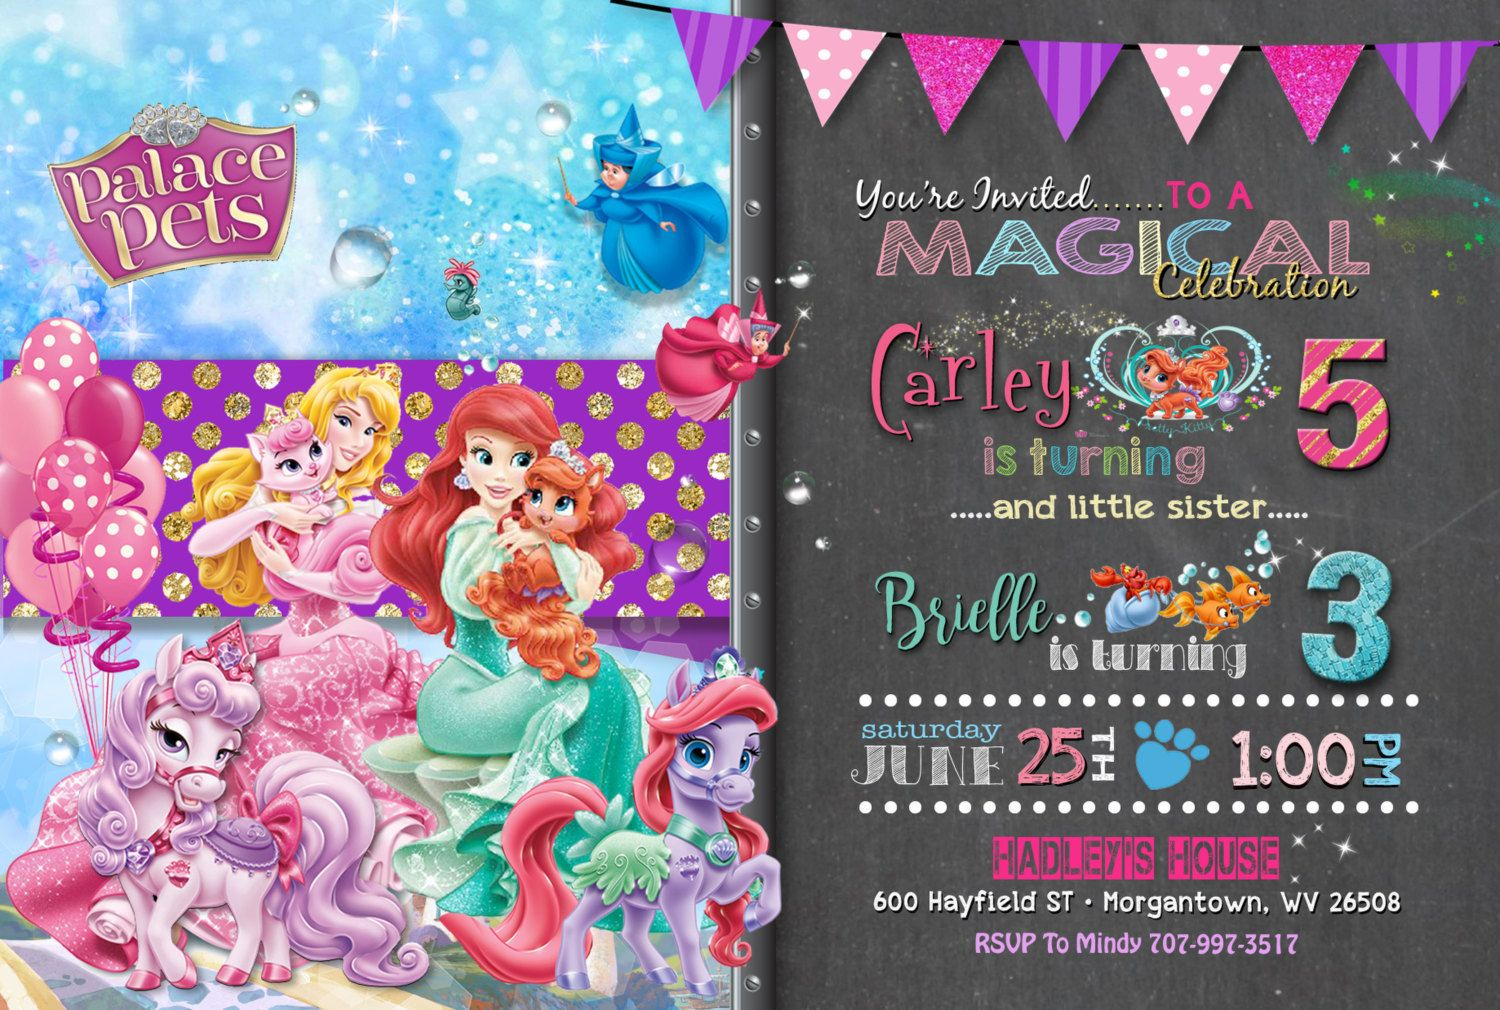 Palace Pets Birthday Party Joint Invitation